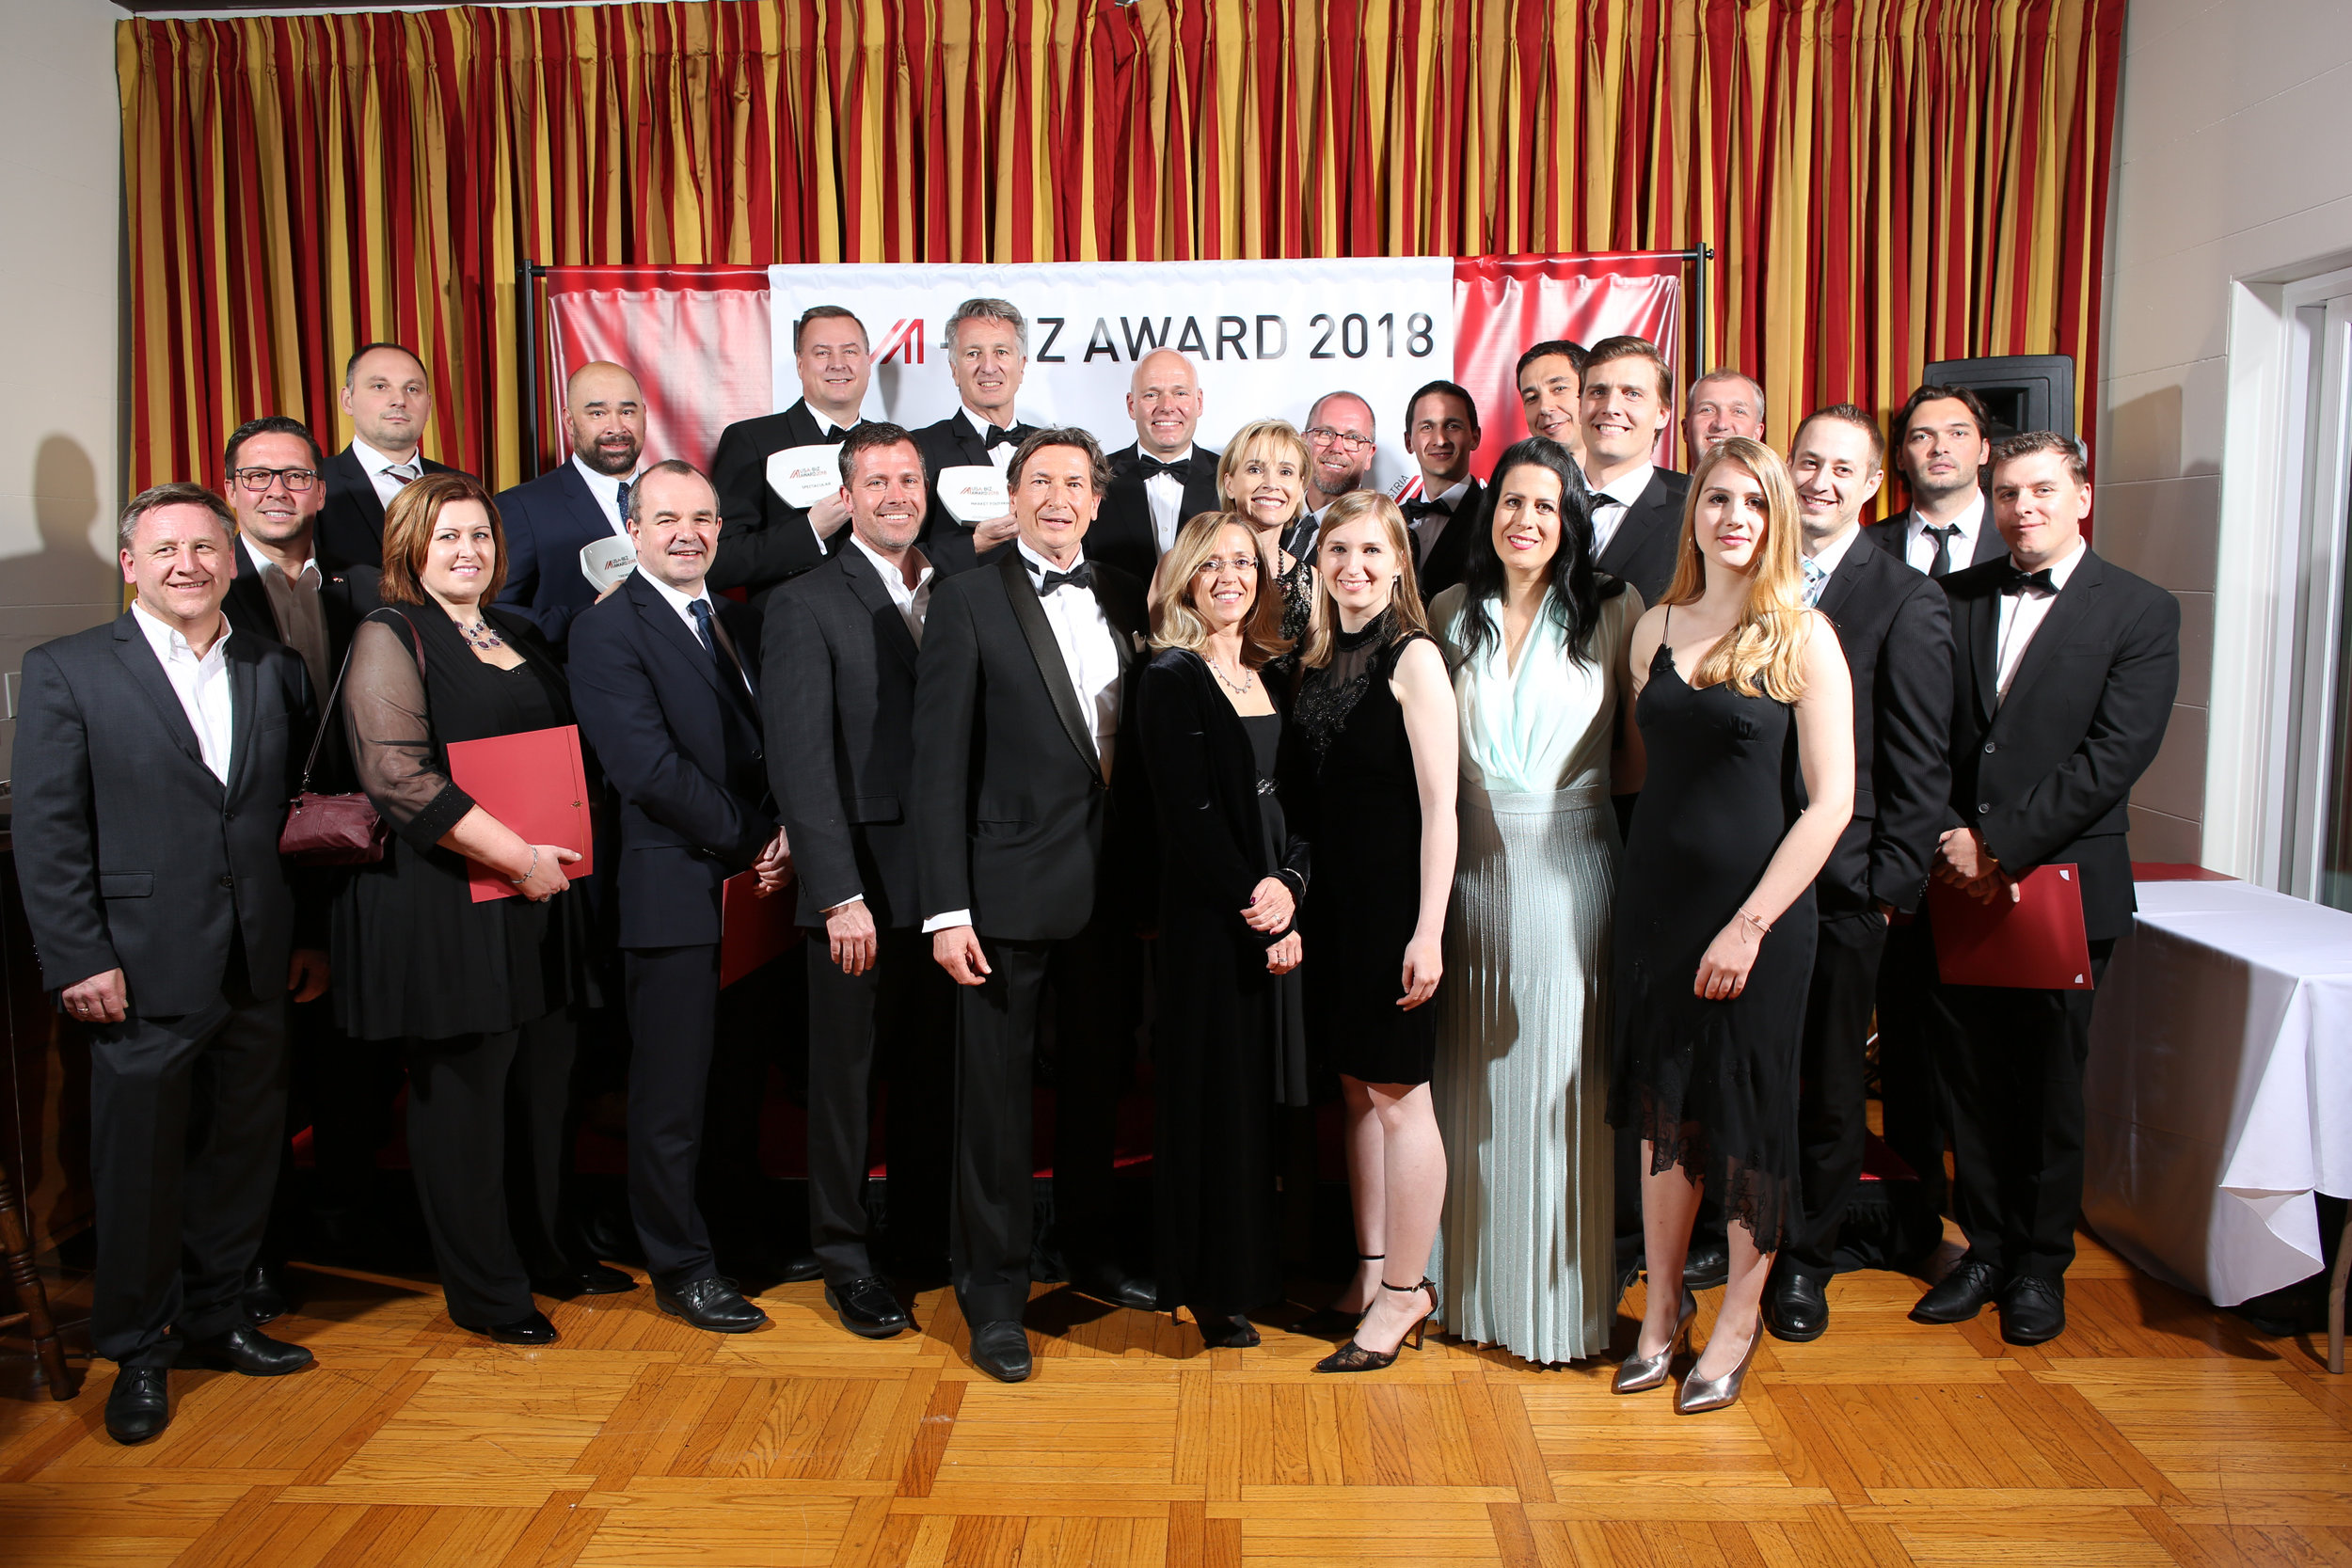 Group photo with all the winners and nominees of the 2018 USA Biz Awards on March 3, 2018, Los Angeles